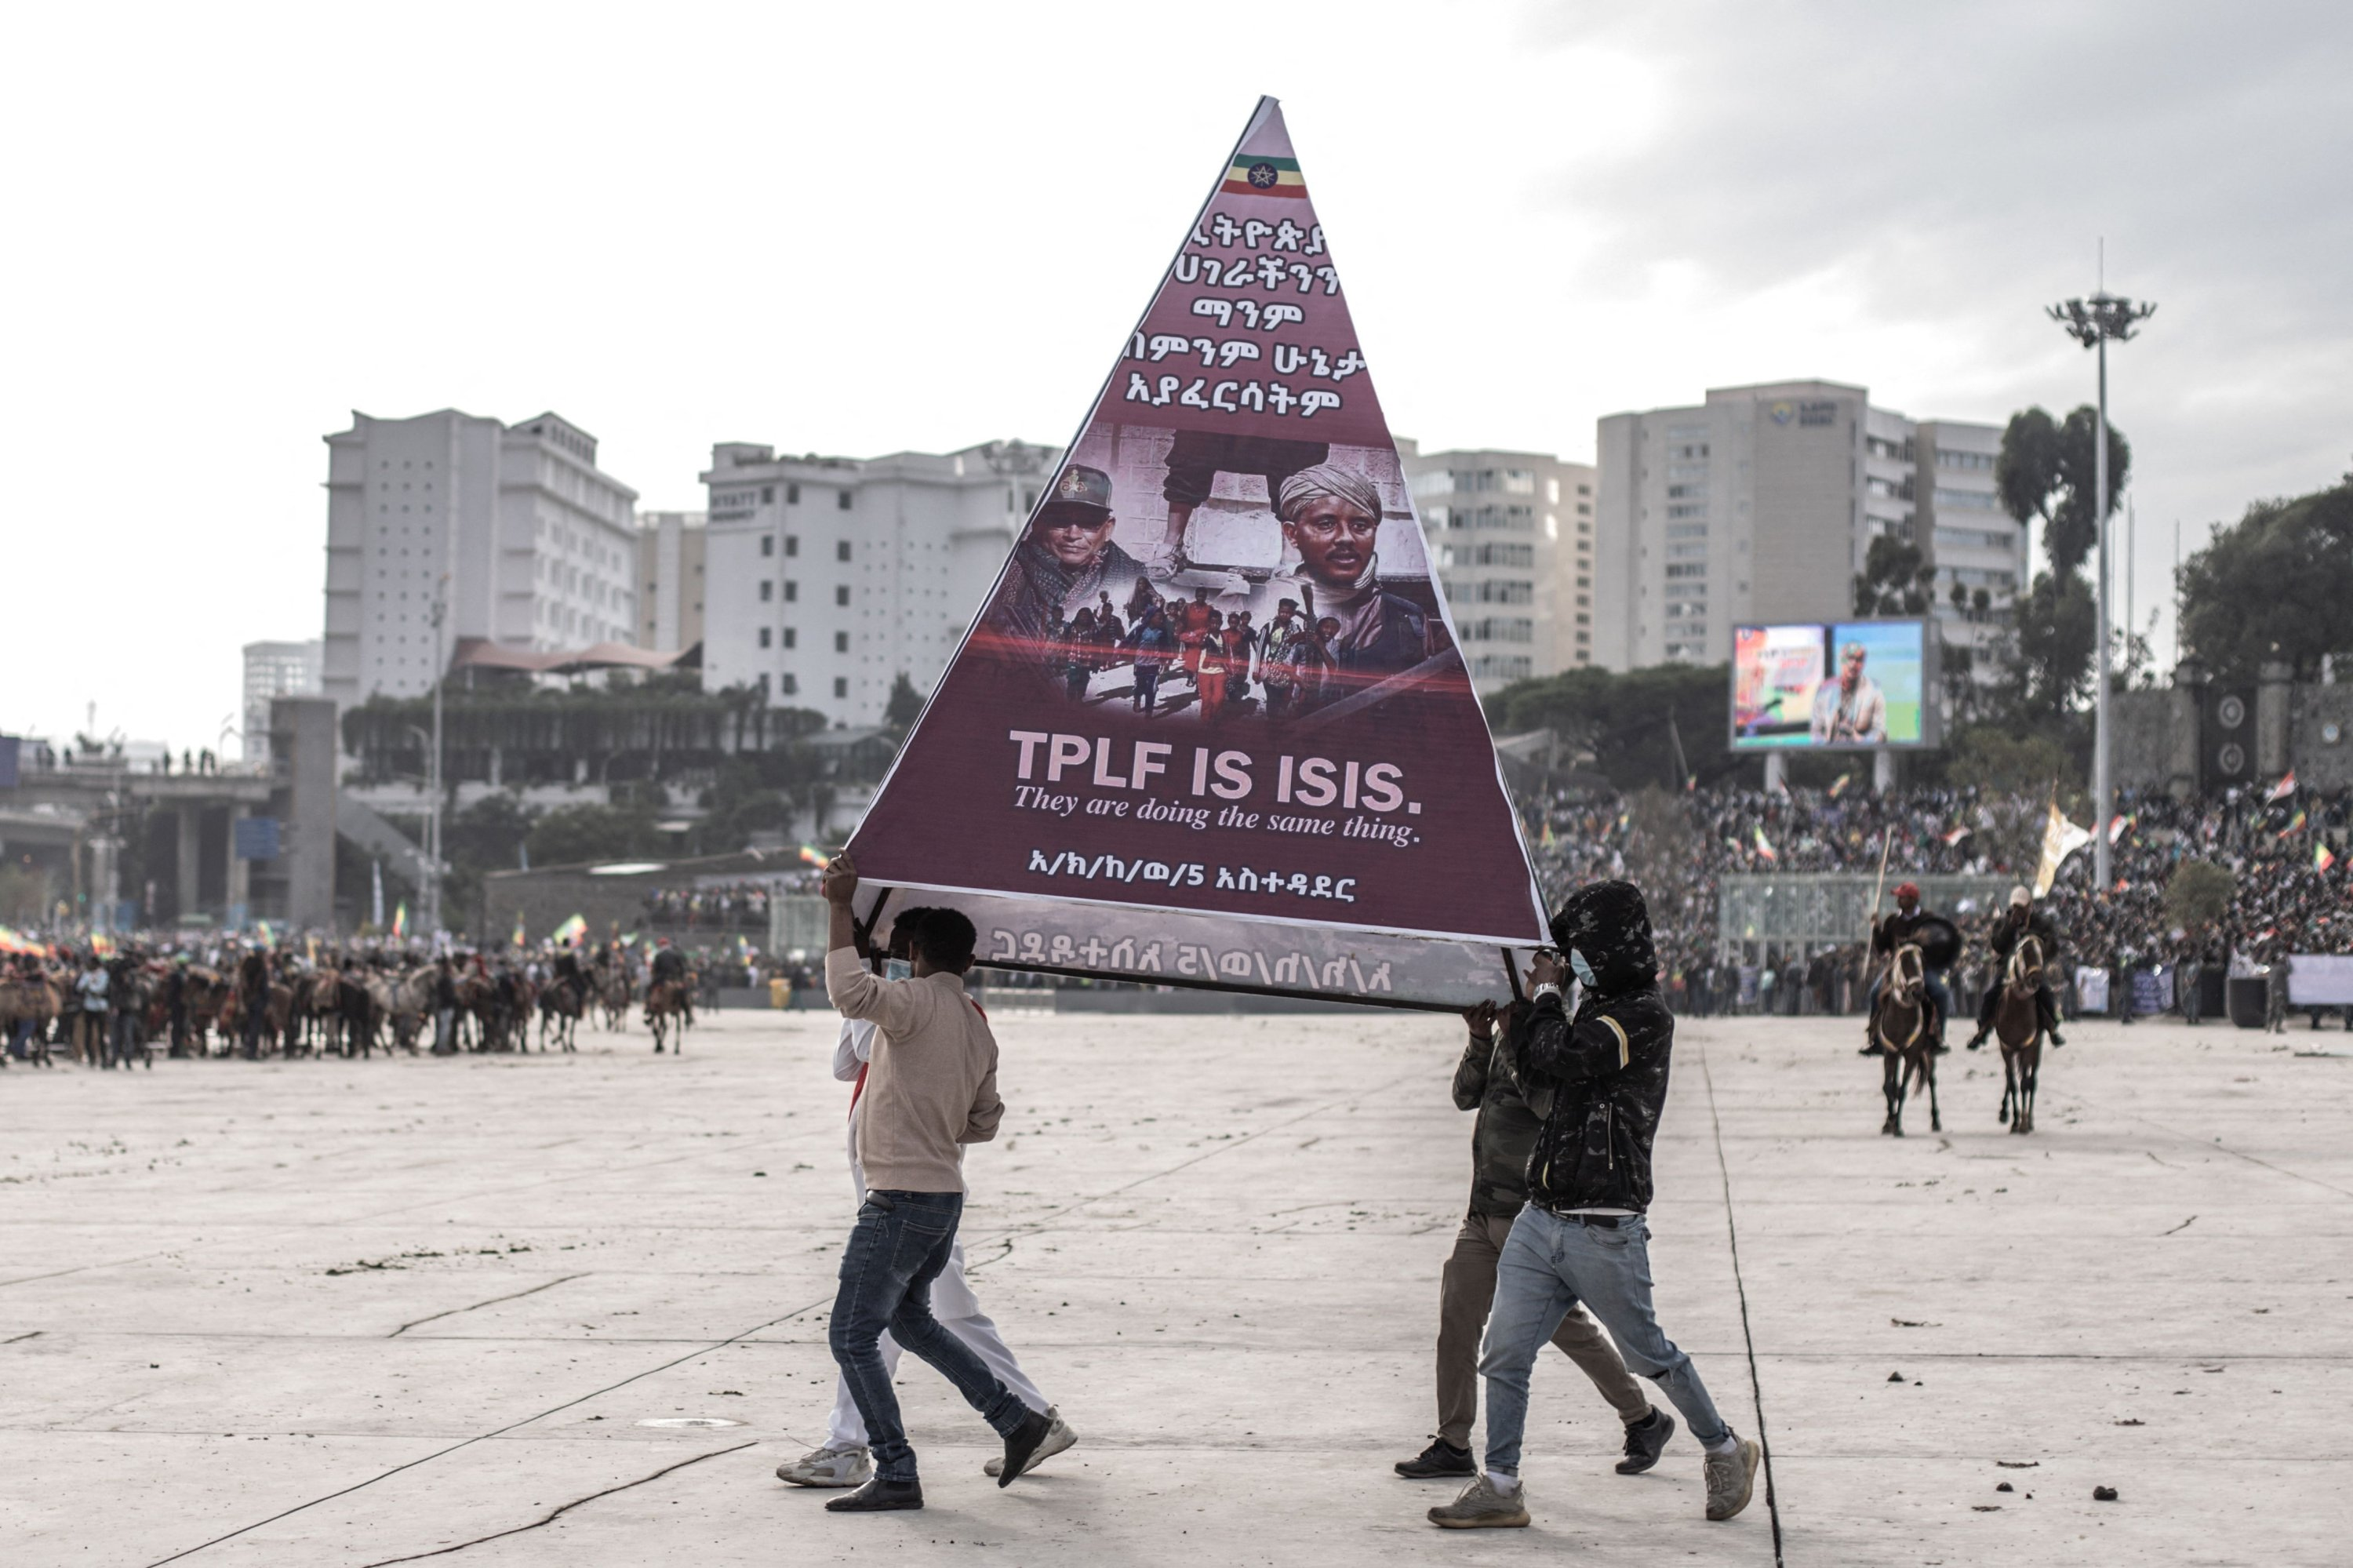 Protesters carry a banner during a rally against TPLF forces (Tigray People's Liberation Front) and in support of Ethiopia's armed forces in Addis Ababa on Aug. 8, 2021. (AFP Photo)